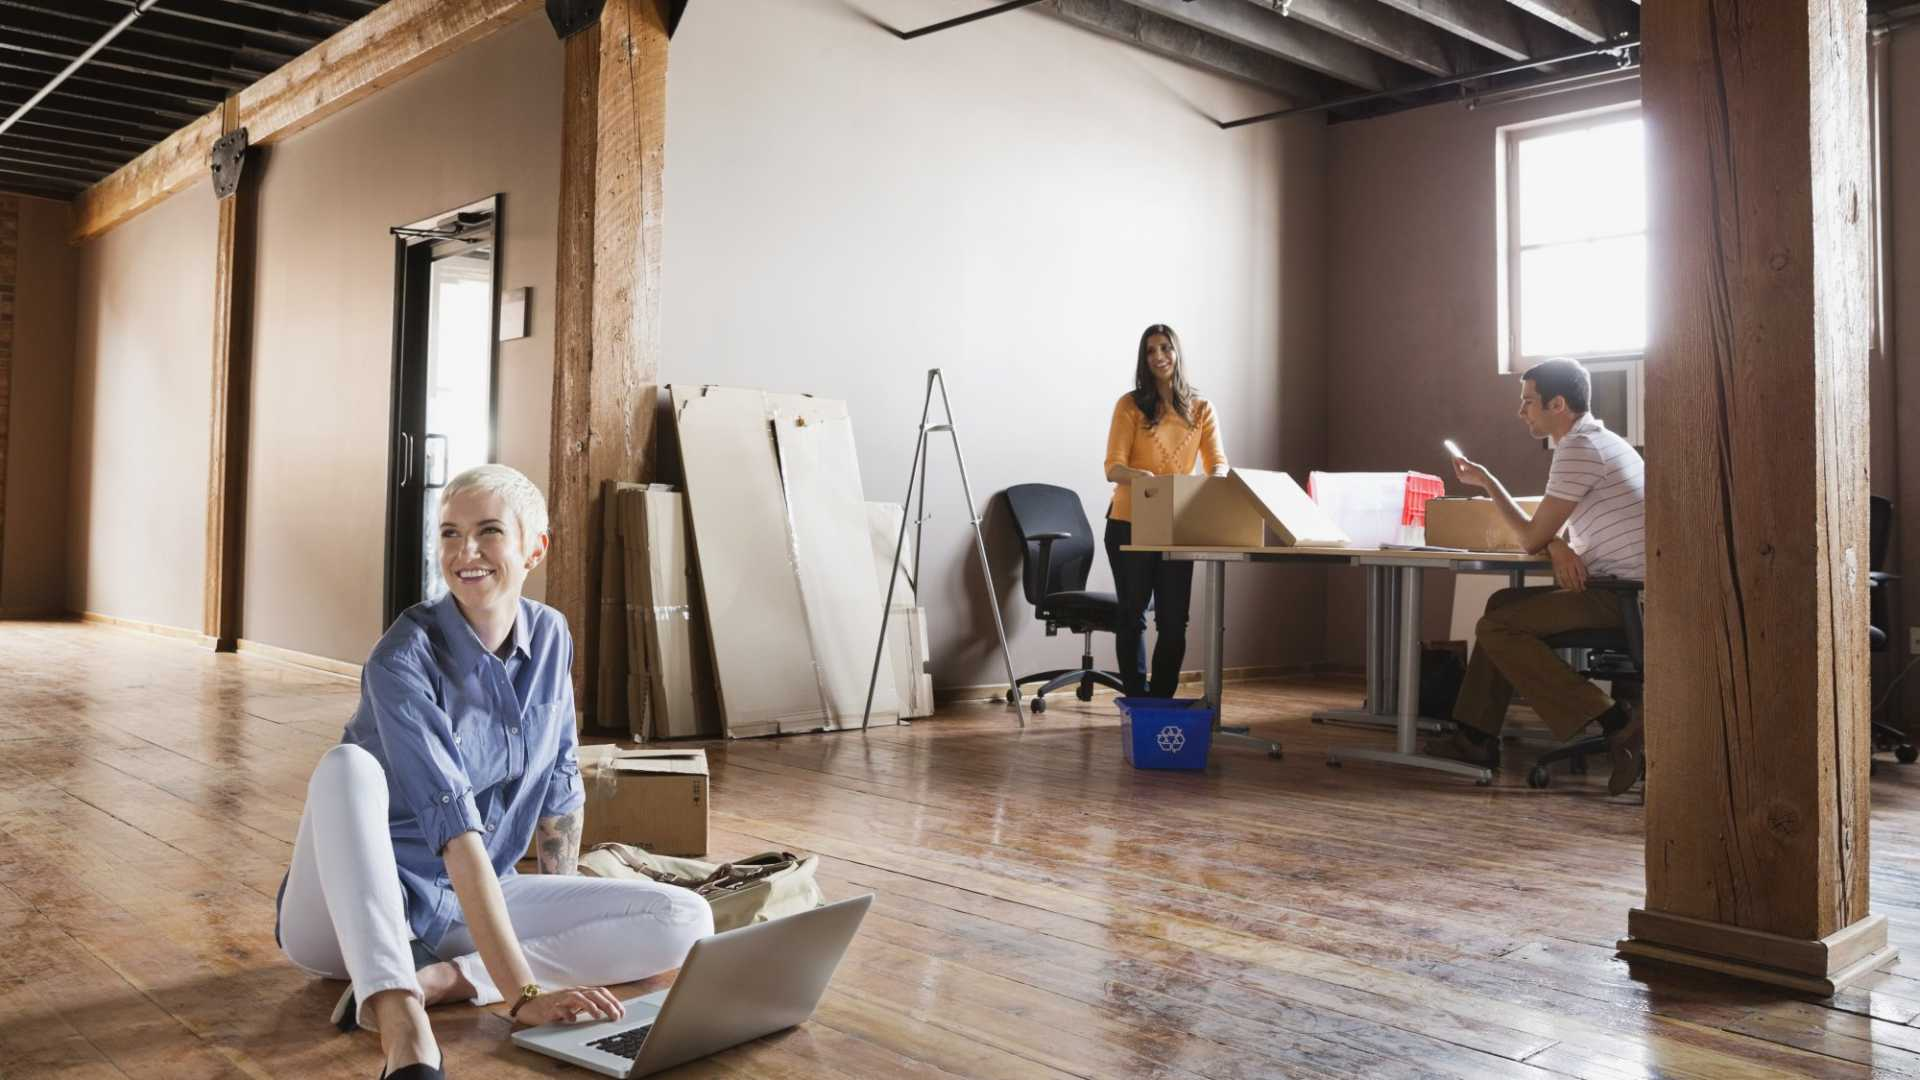 How to Bootstrap a Business from Your Basement